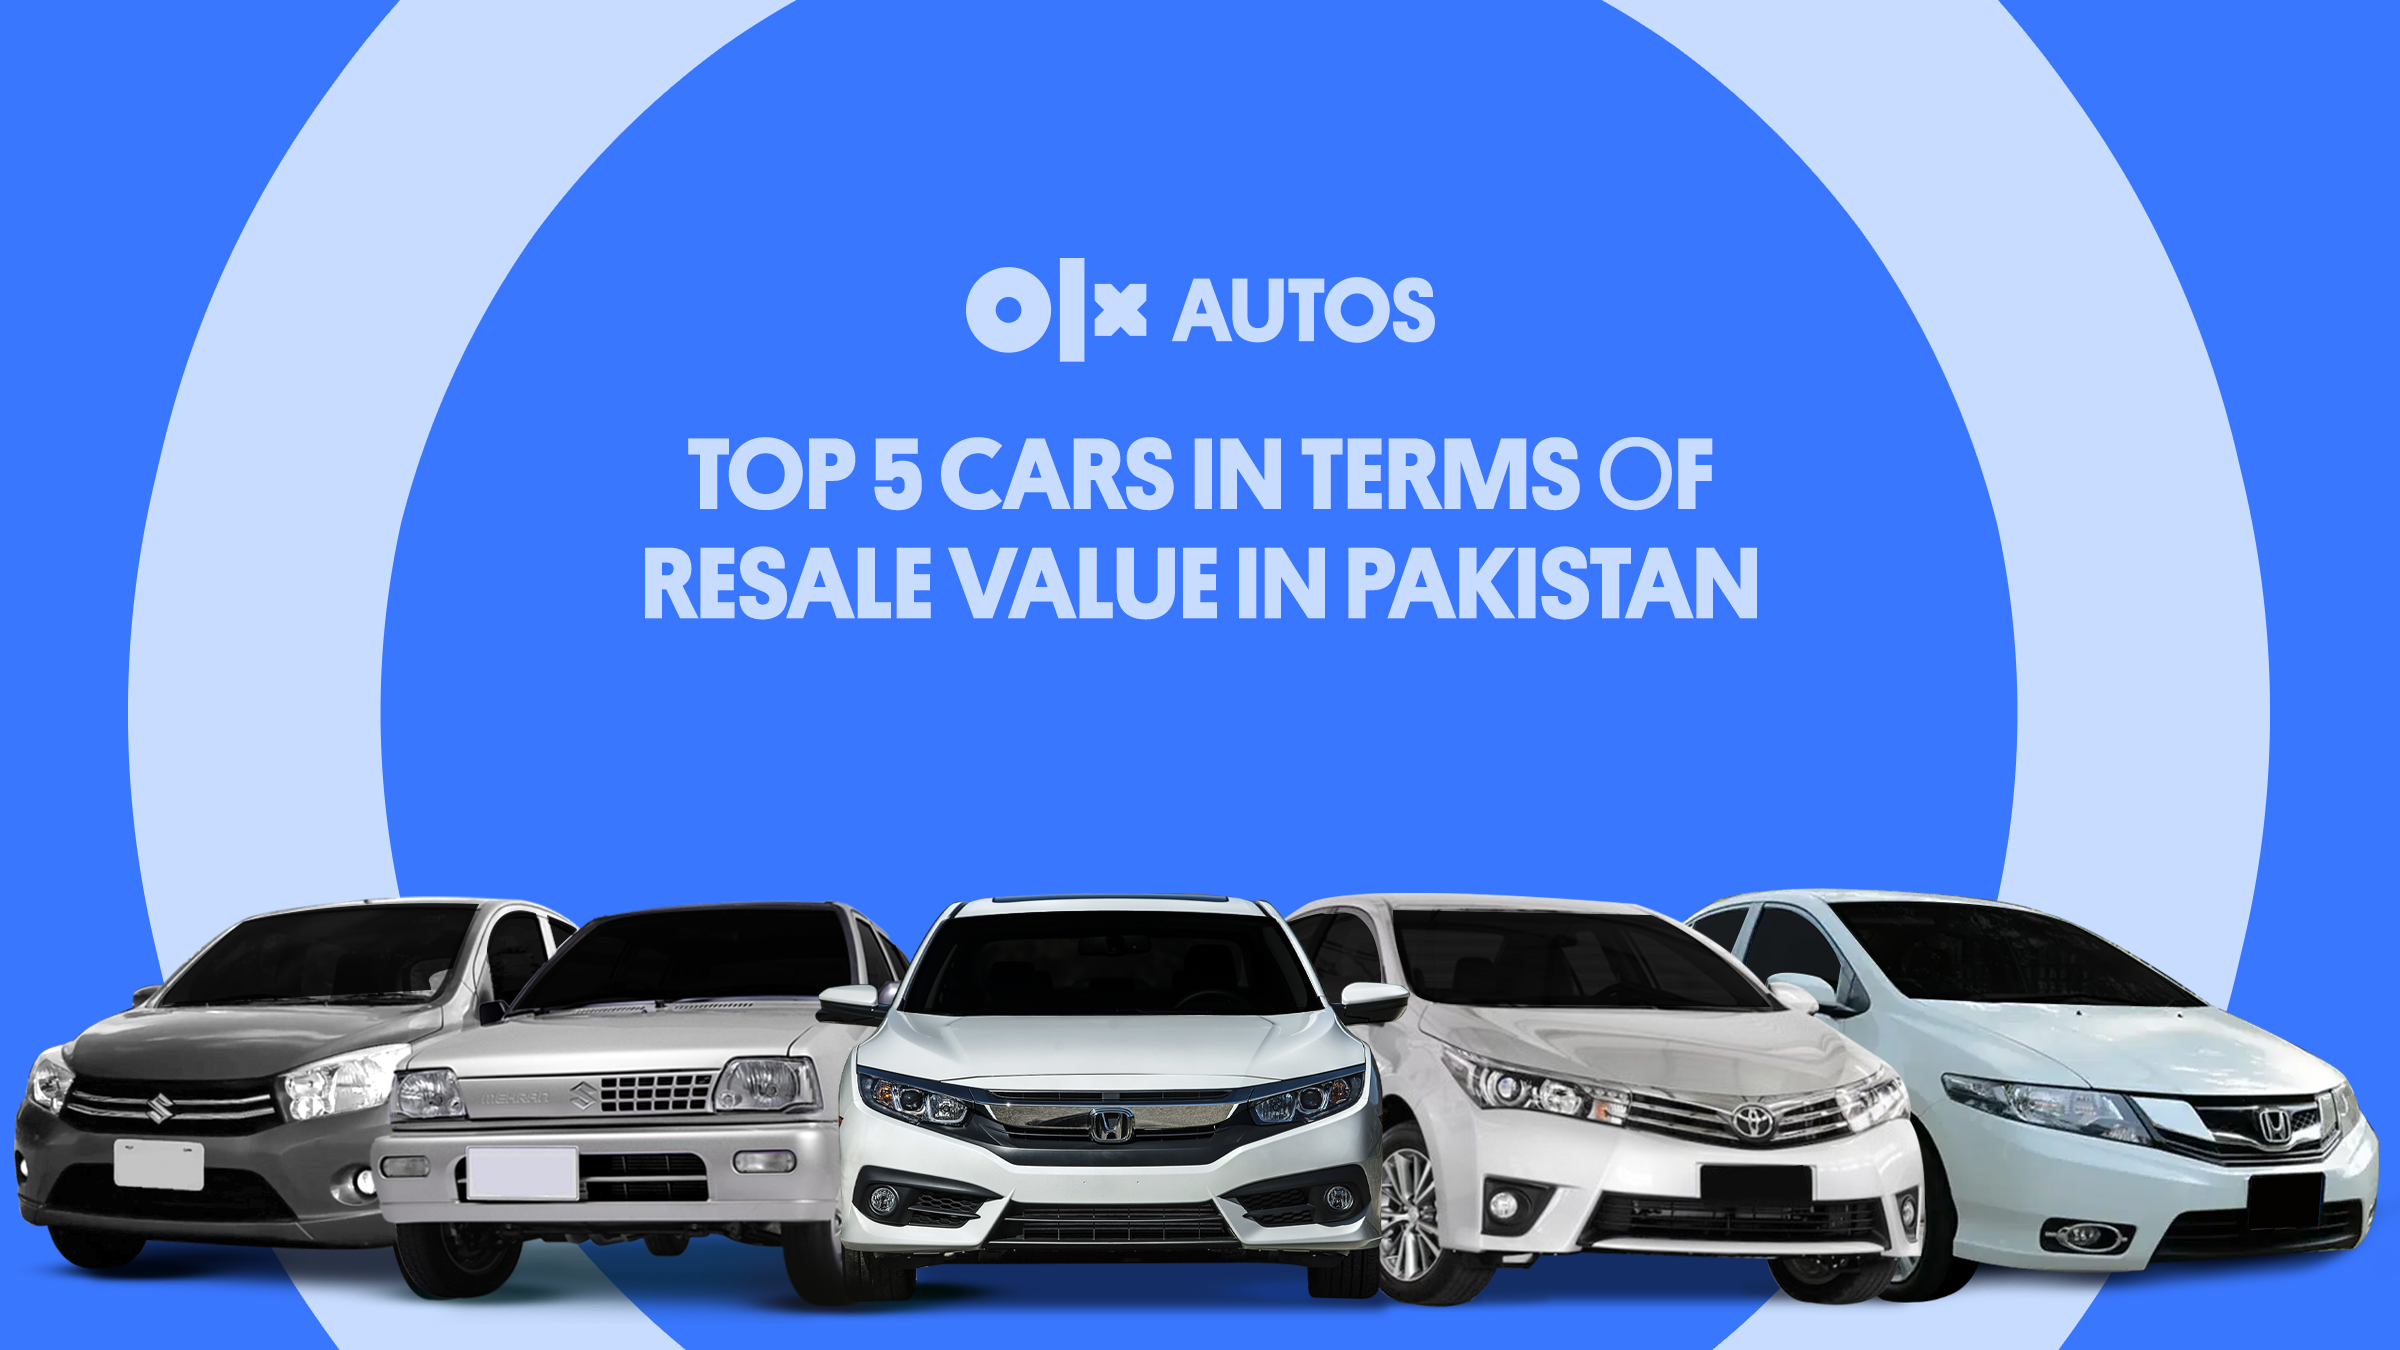 Top 5 Cars in Terms of Resale Value in Pakistan